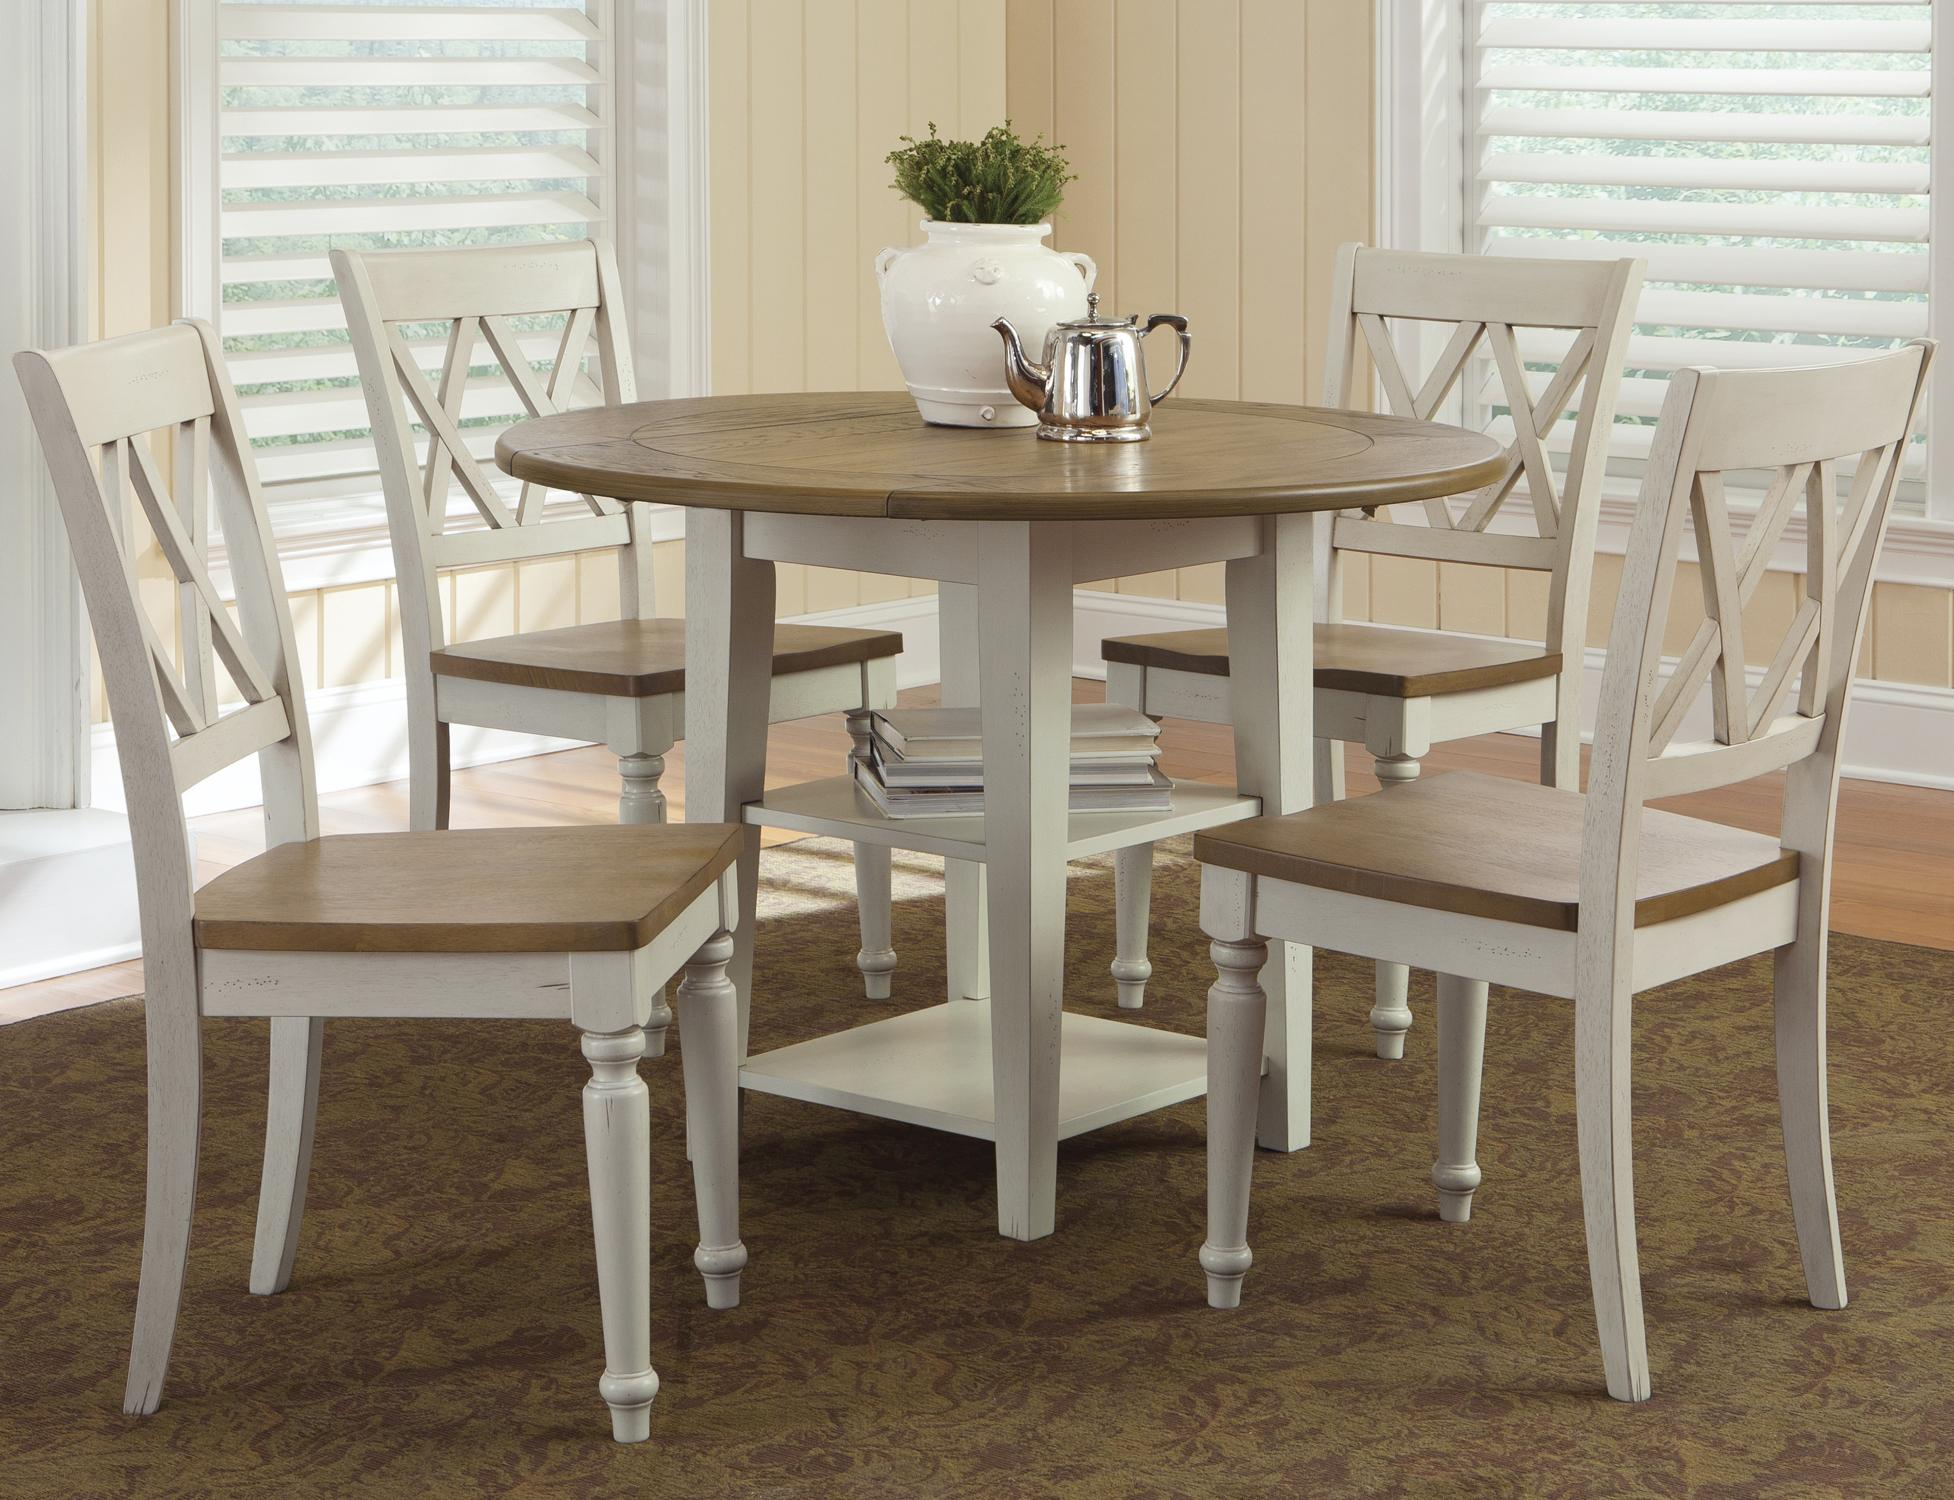 al s chairs and tables kids wooden table liberty furniture fresco iii five piece drop leaf